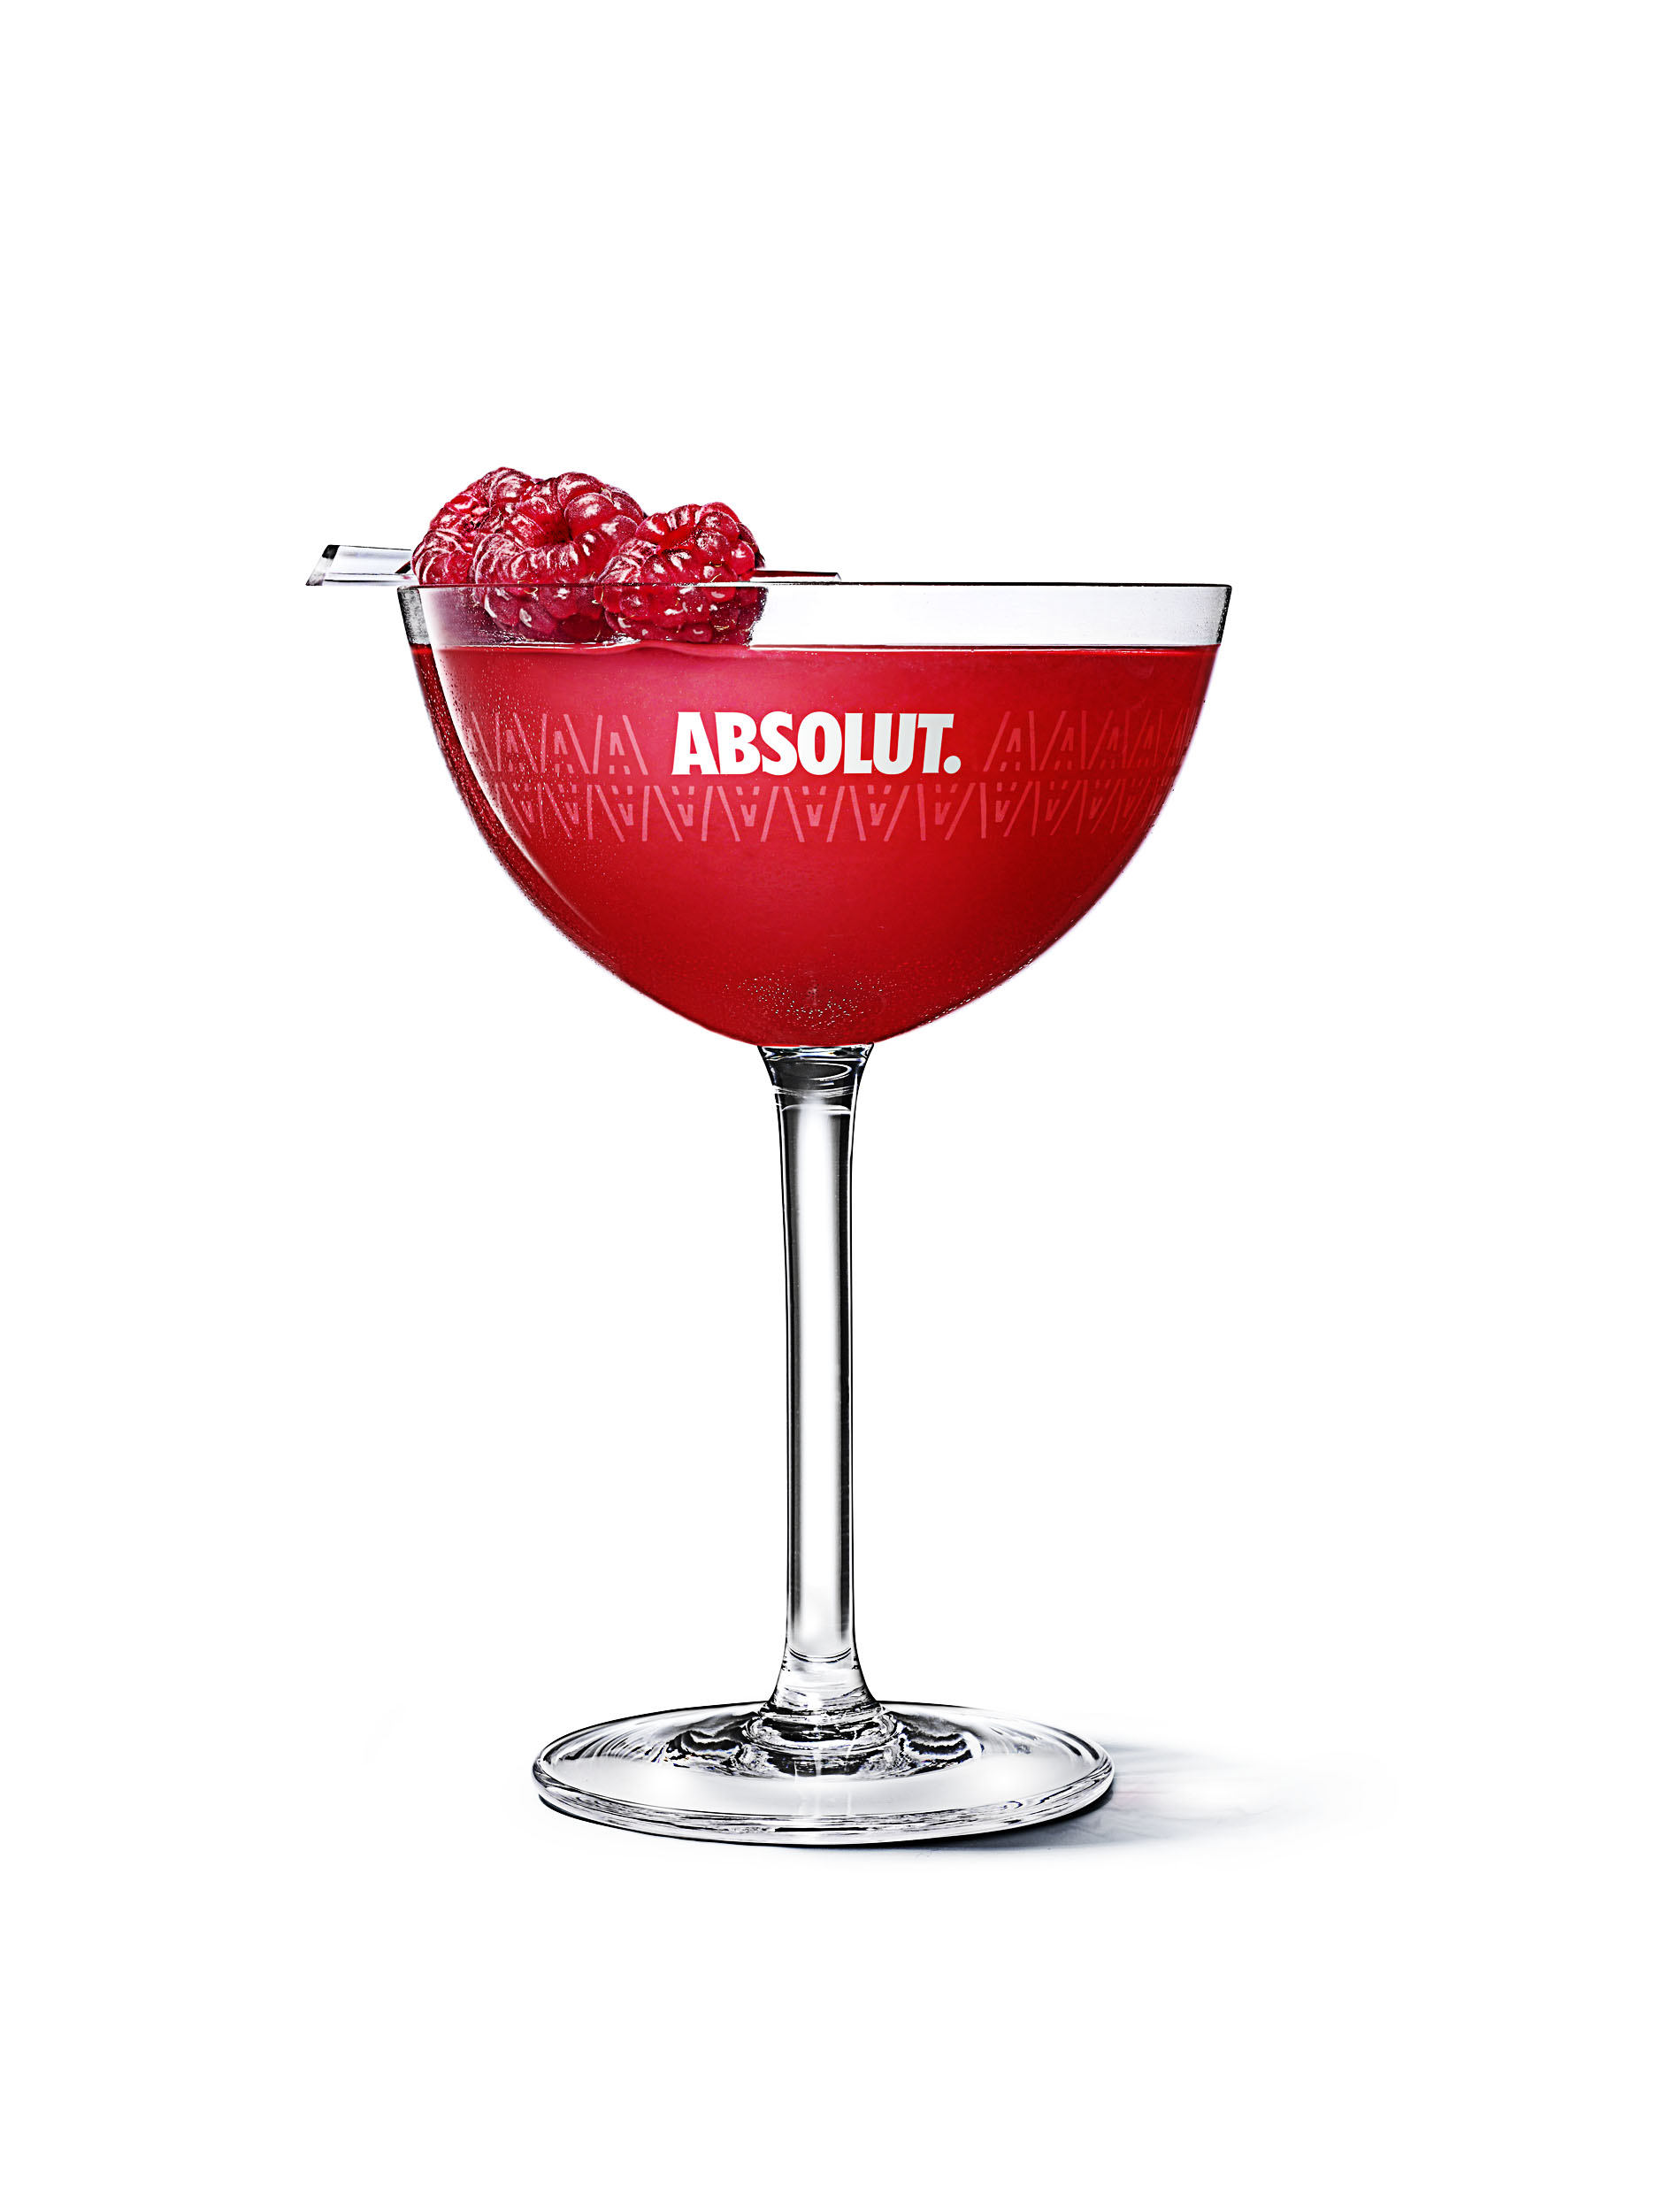 jensmortensen-absolut-vodka-ce855ab9